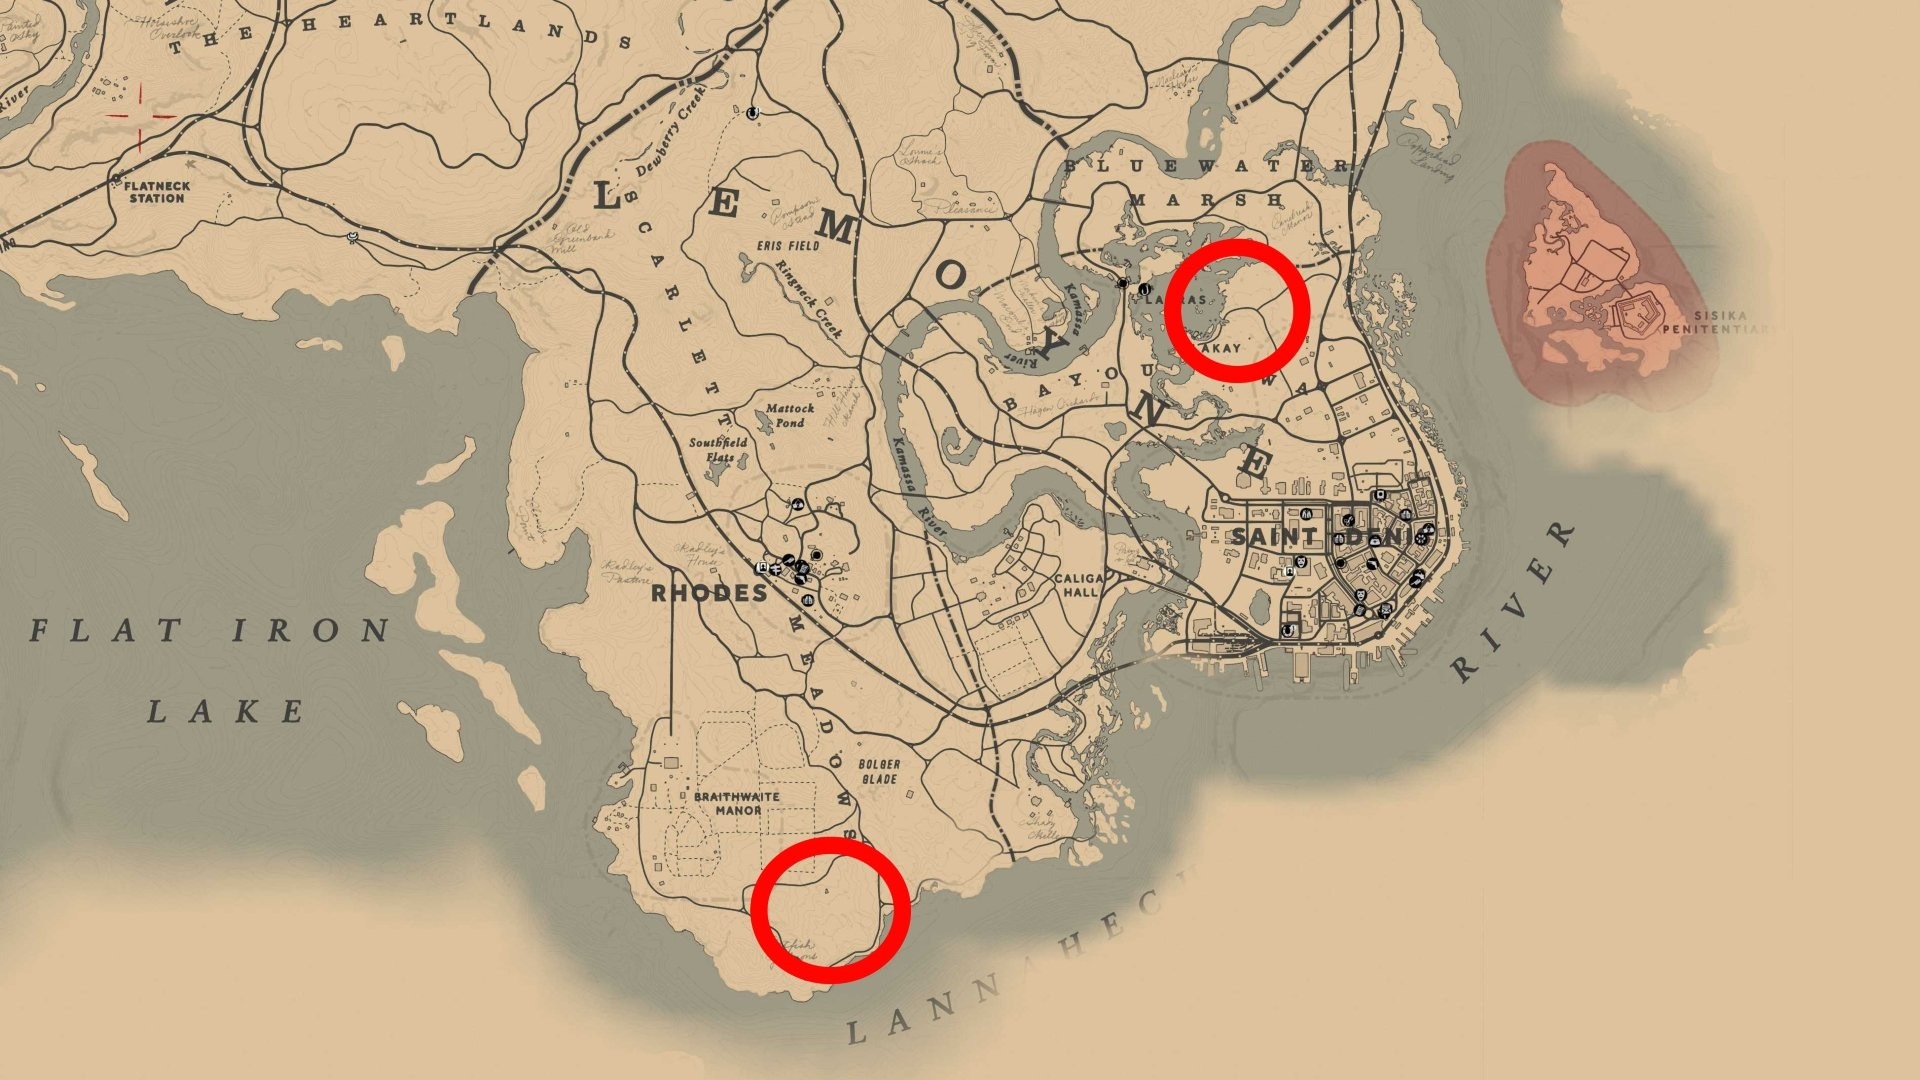 Where to find Panthers in RDR2